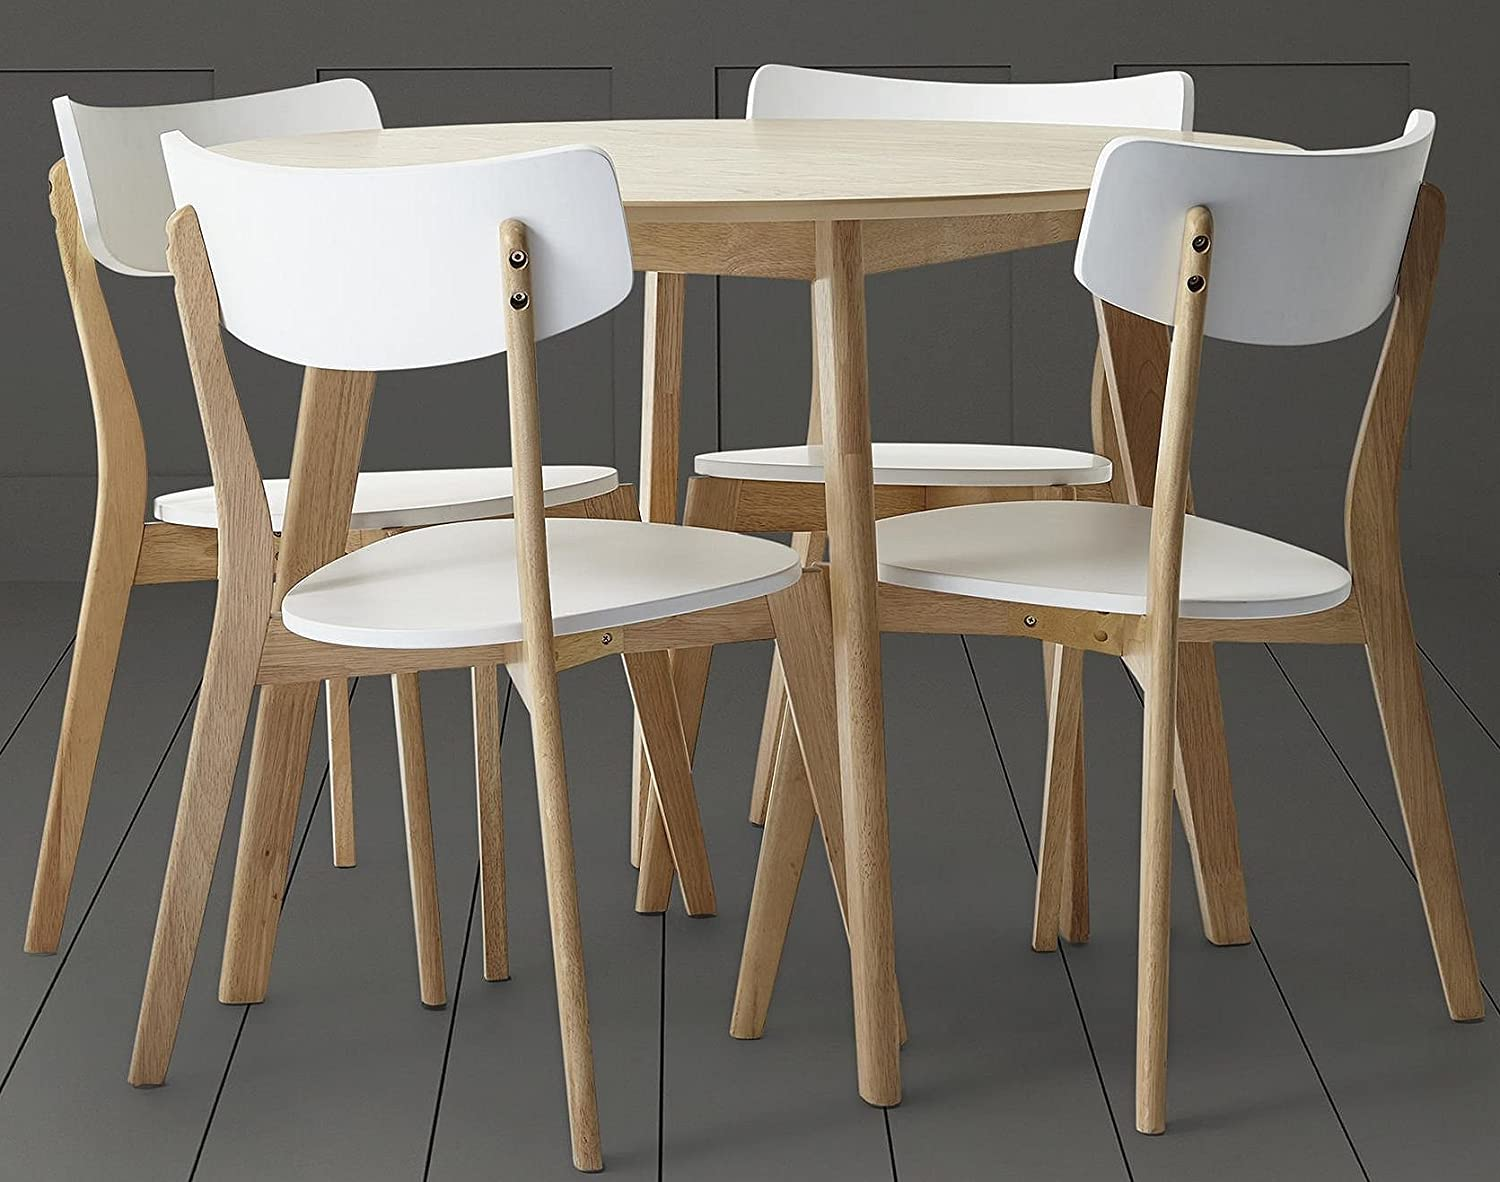 Tesco Charlie Round Dining Table & 11 Chair Set - Oak Effect